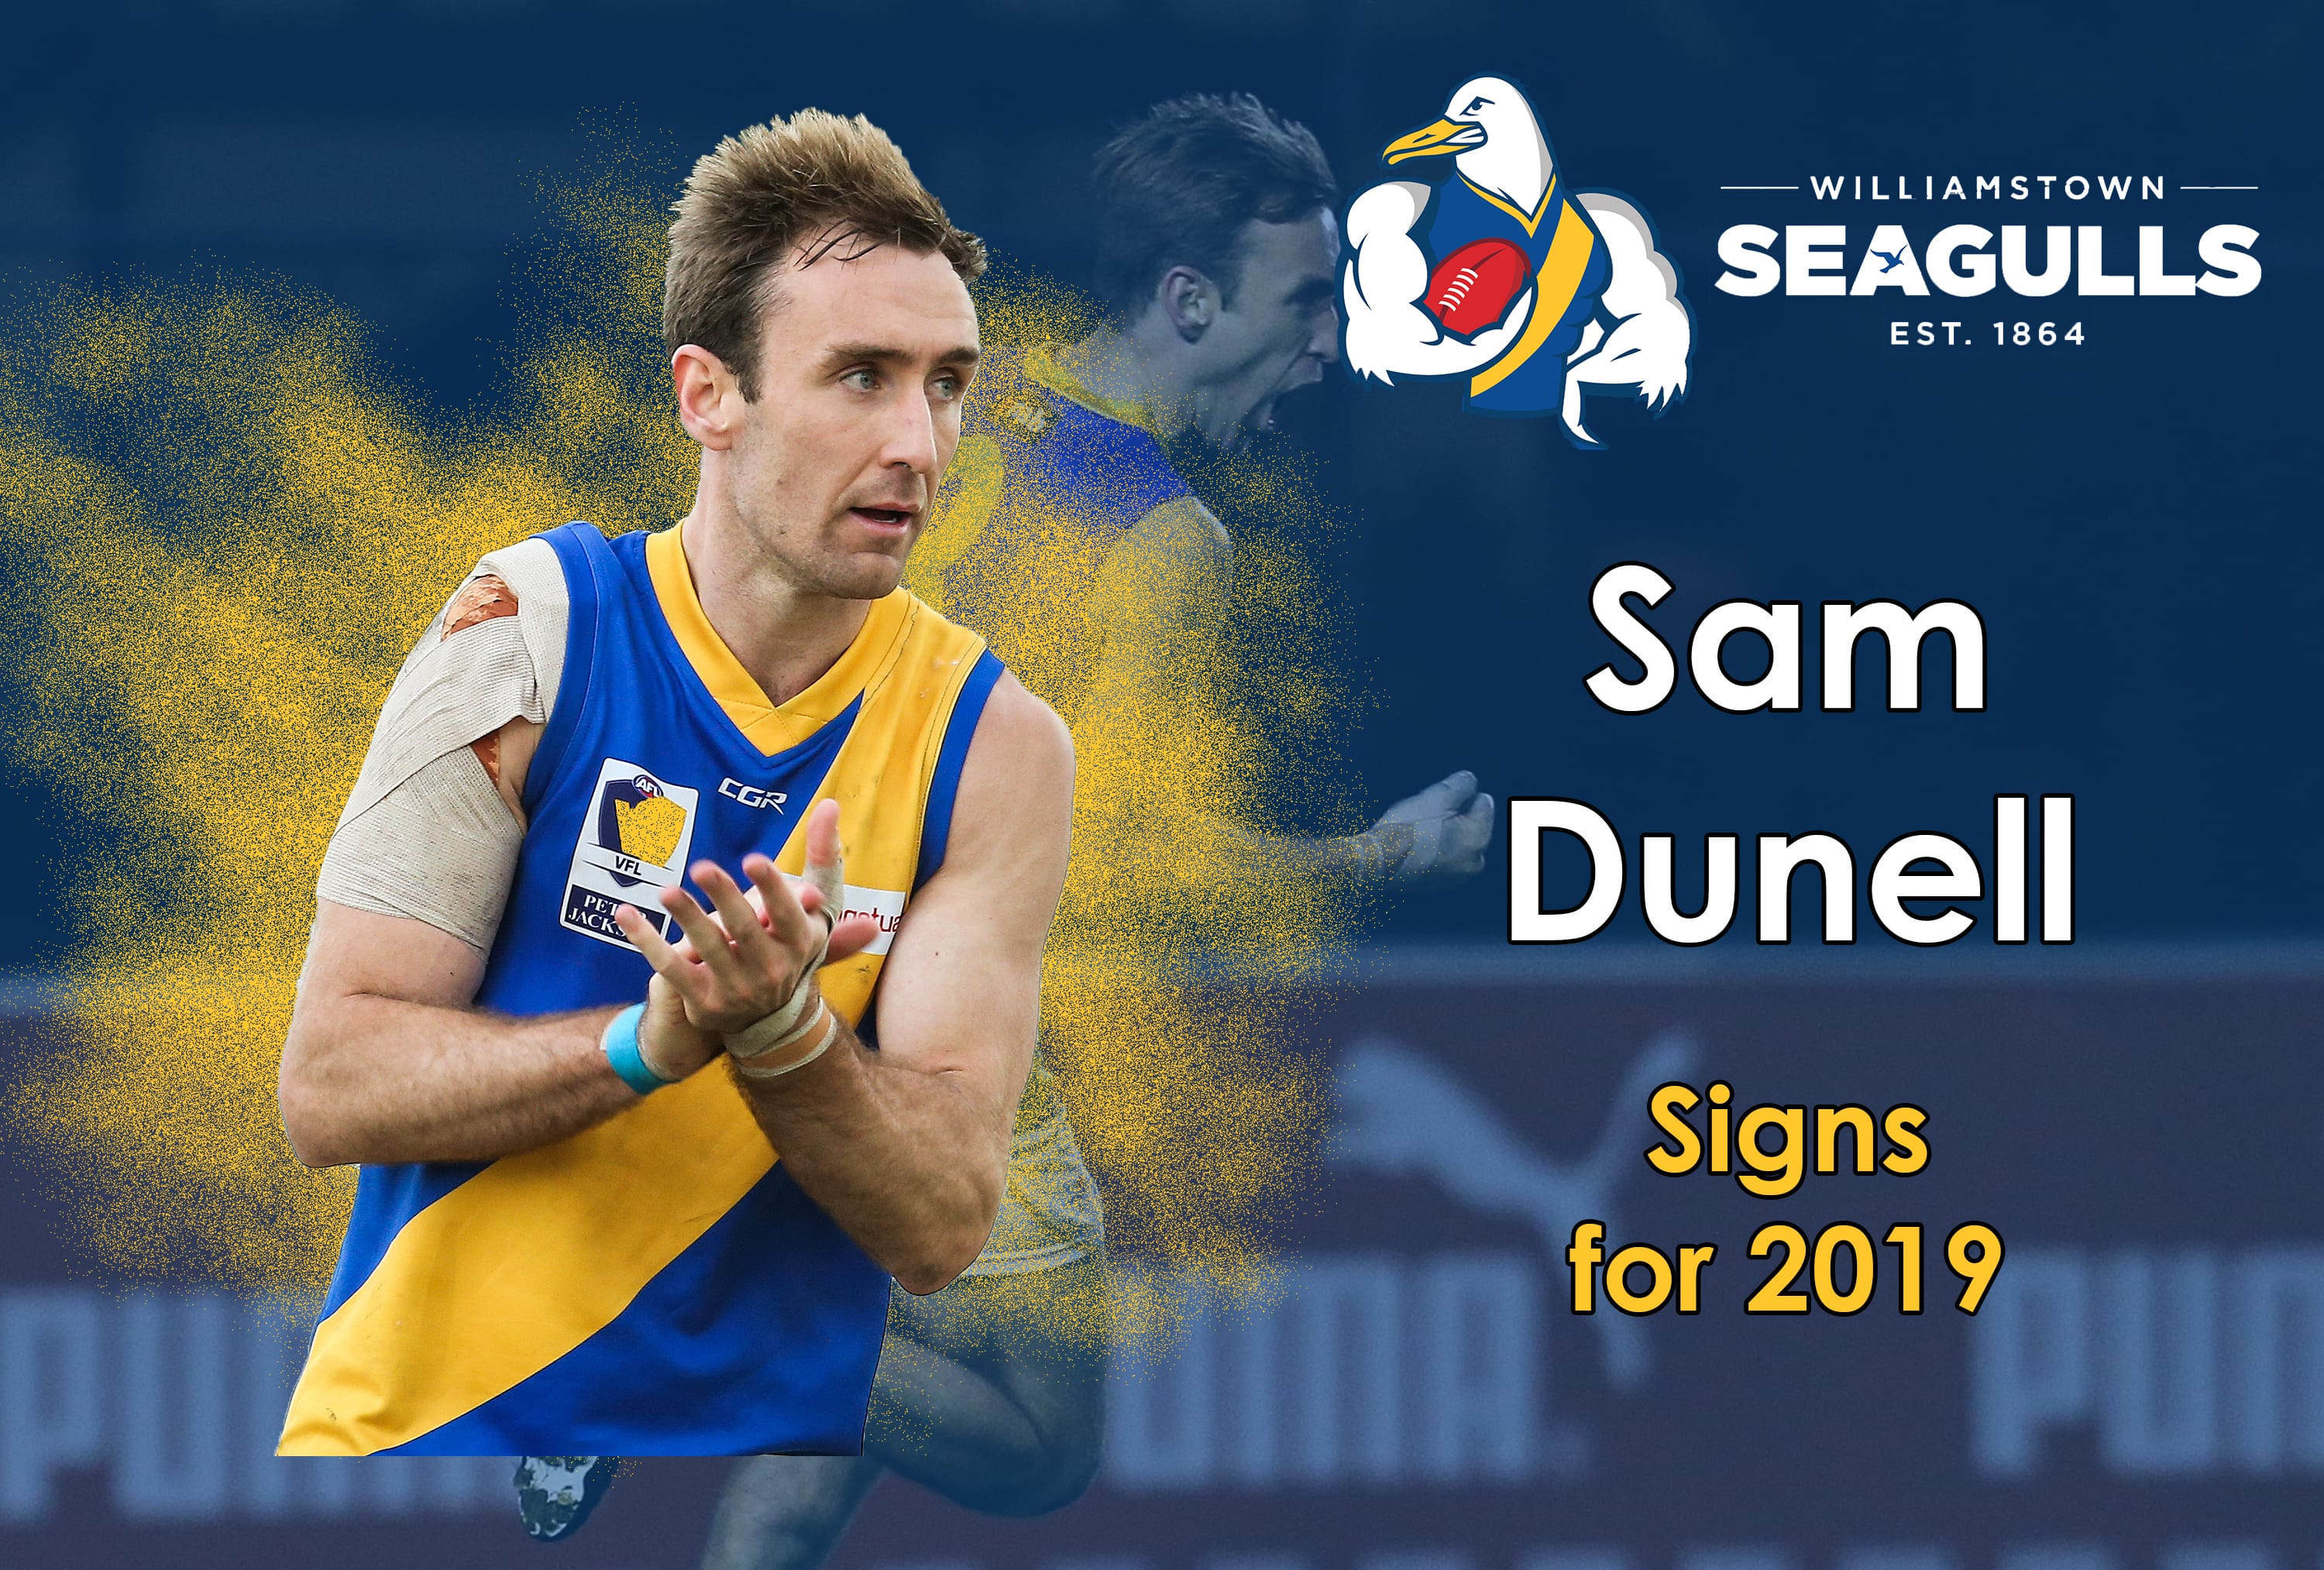 VFL stars re-sign for 2019 - Williamstown Football Club